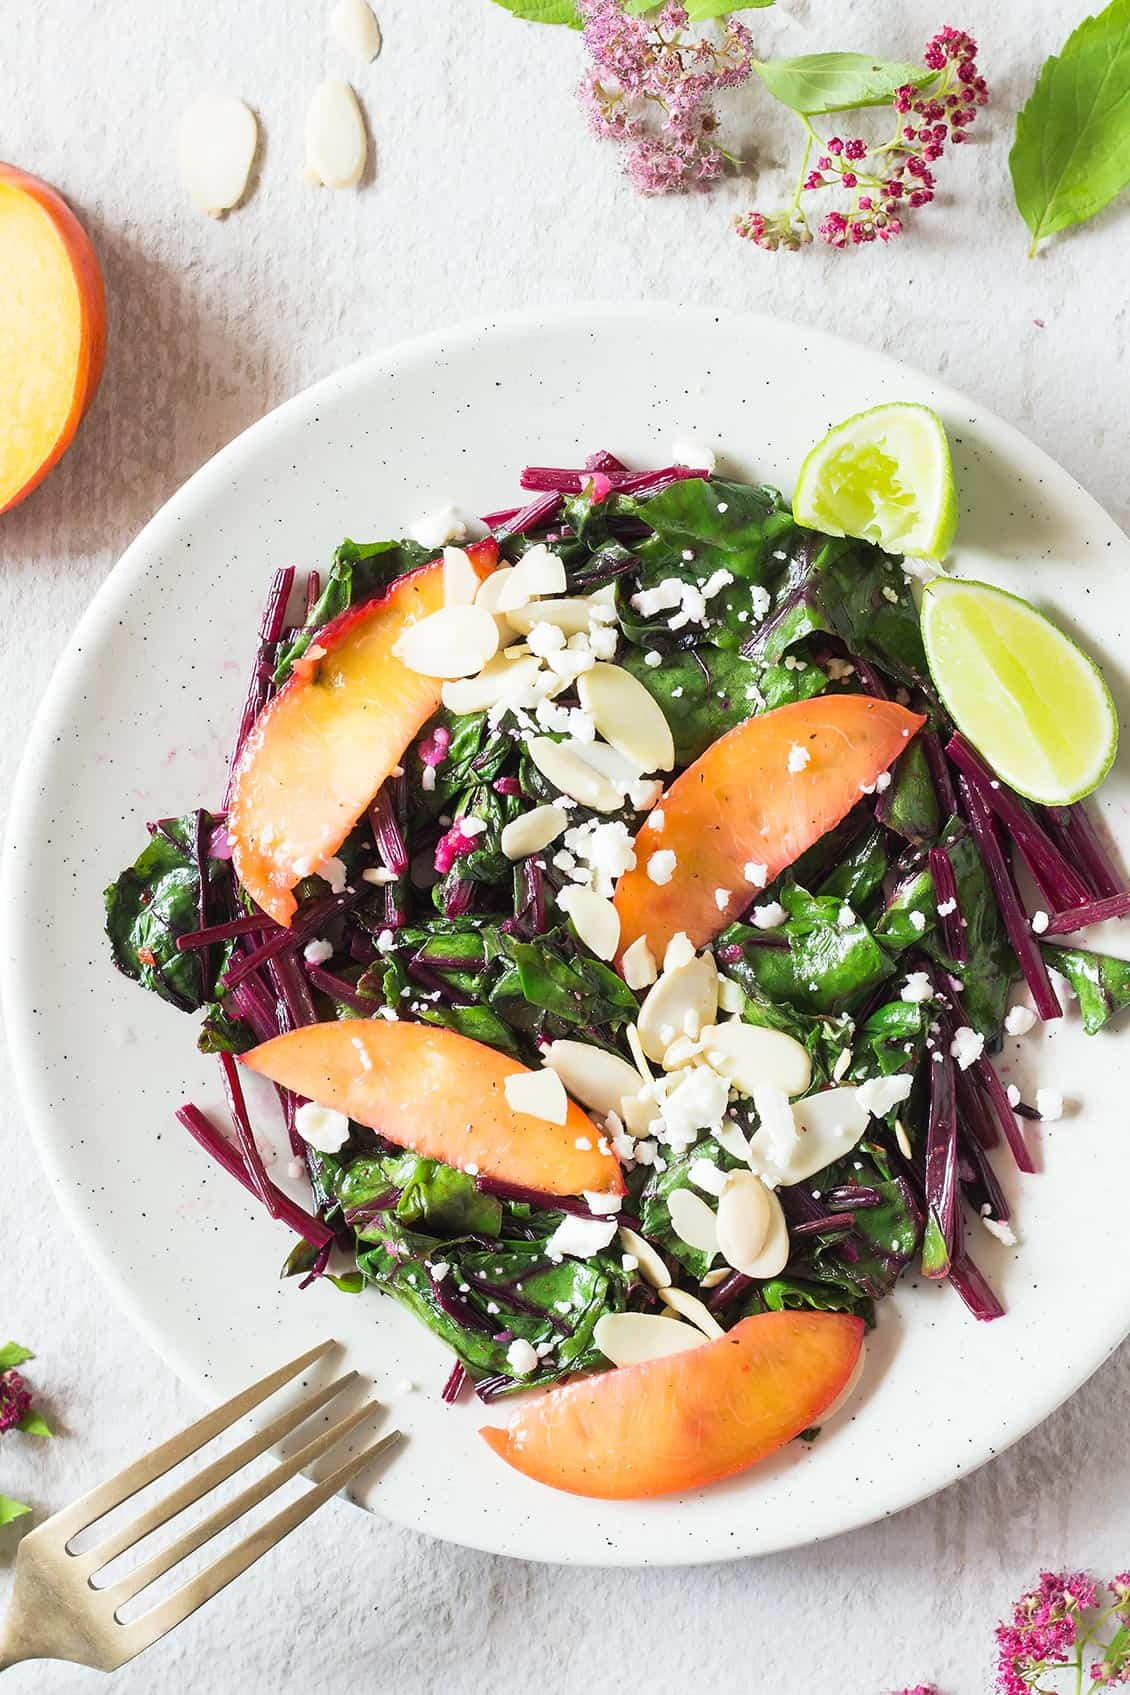 Sautéed Beet Greens with Nectarine and Feta